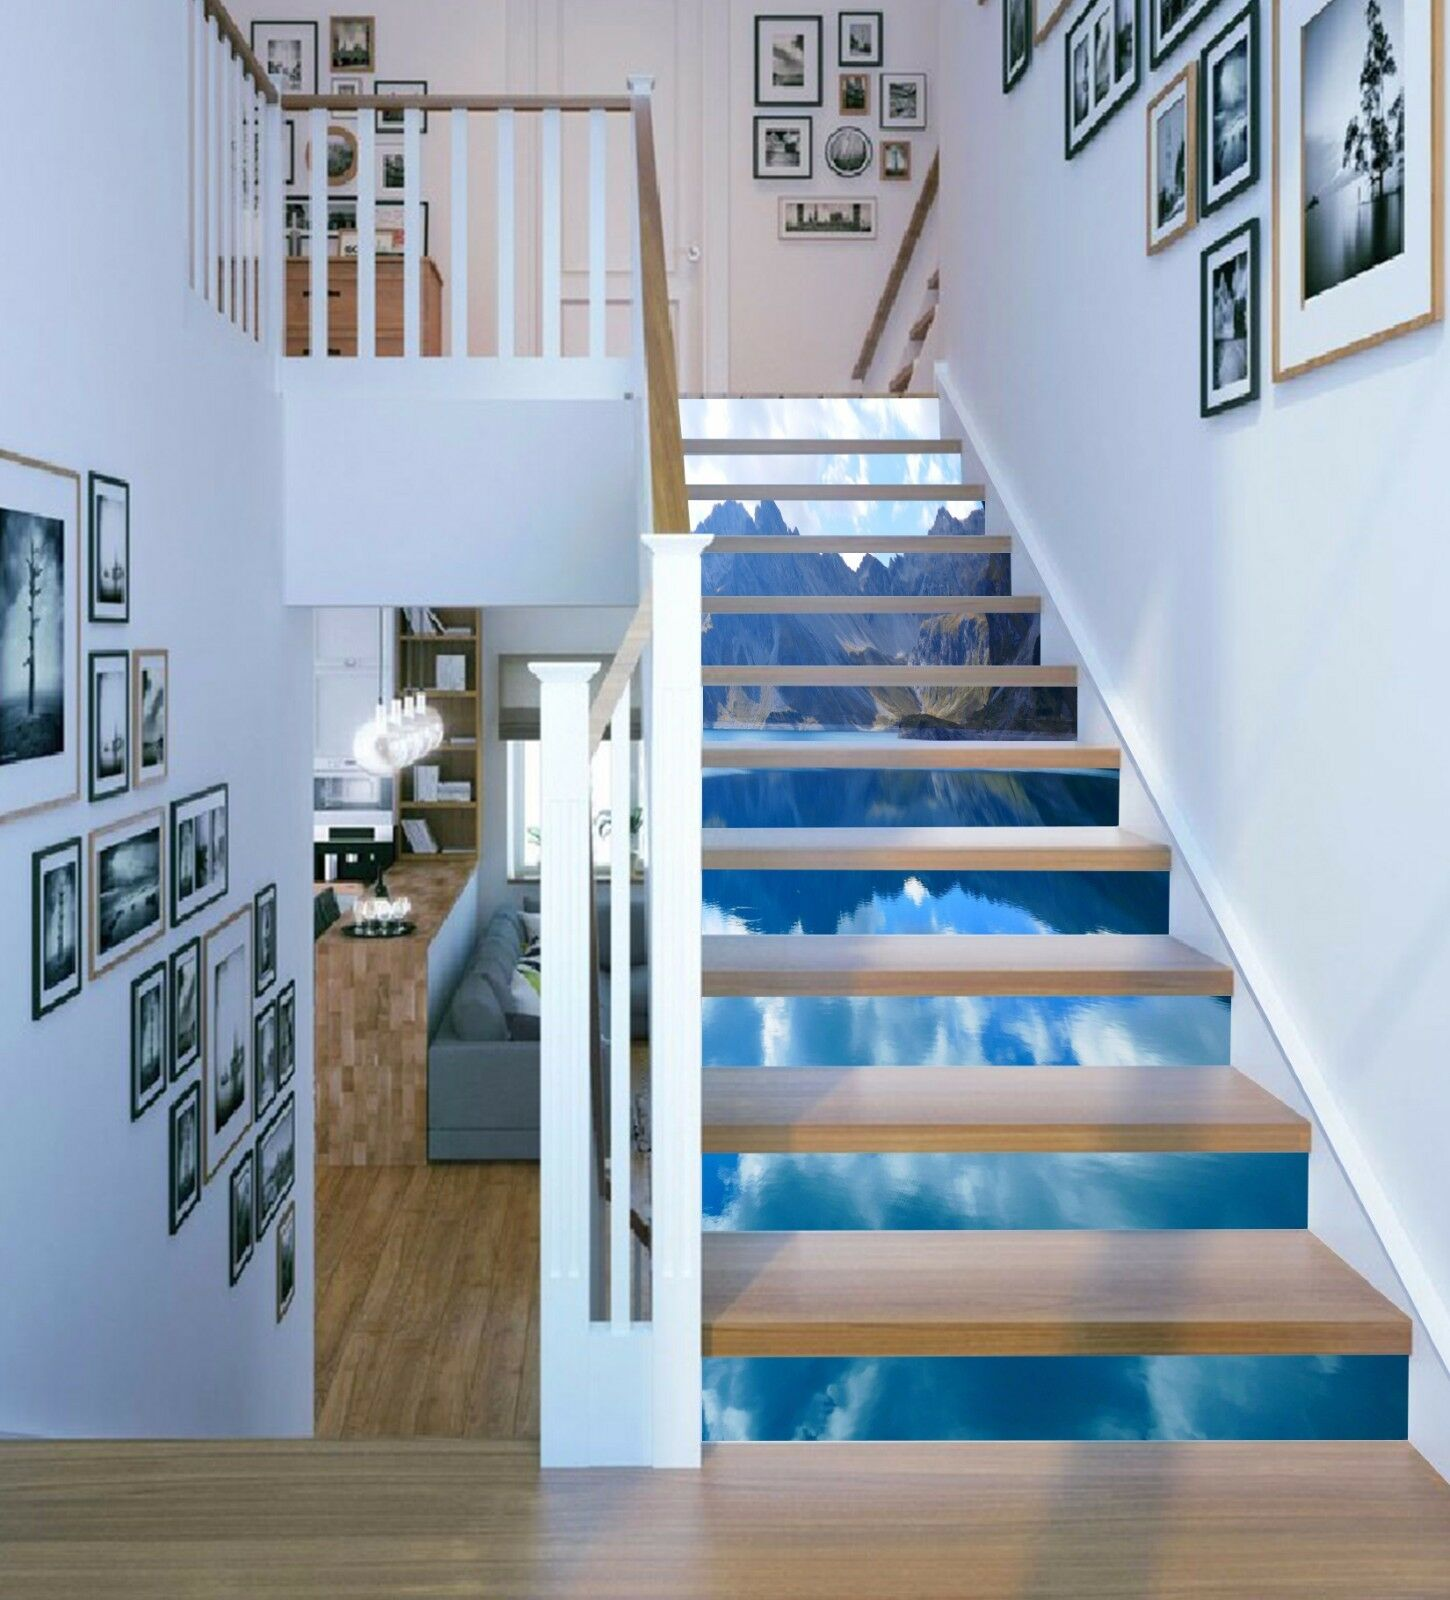 3D 3D 3D Sky Lake 7 Stair Risers Decoration Photo Mural Vinyl Decal Wallpaper UK 4b2d67